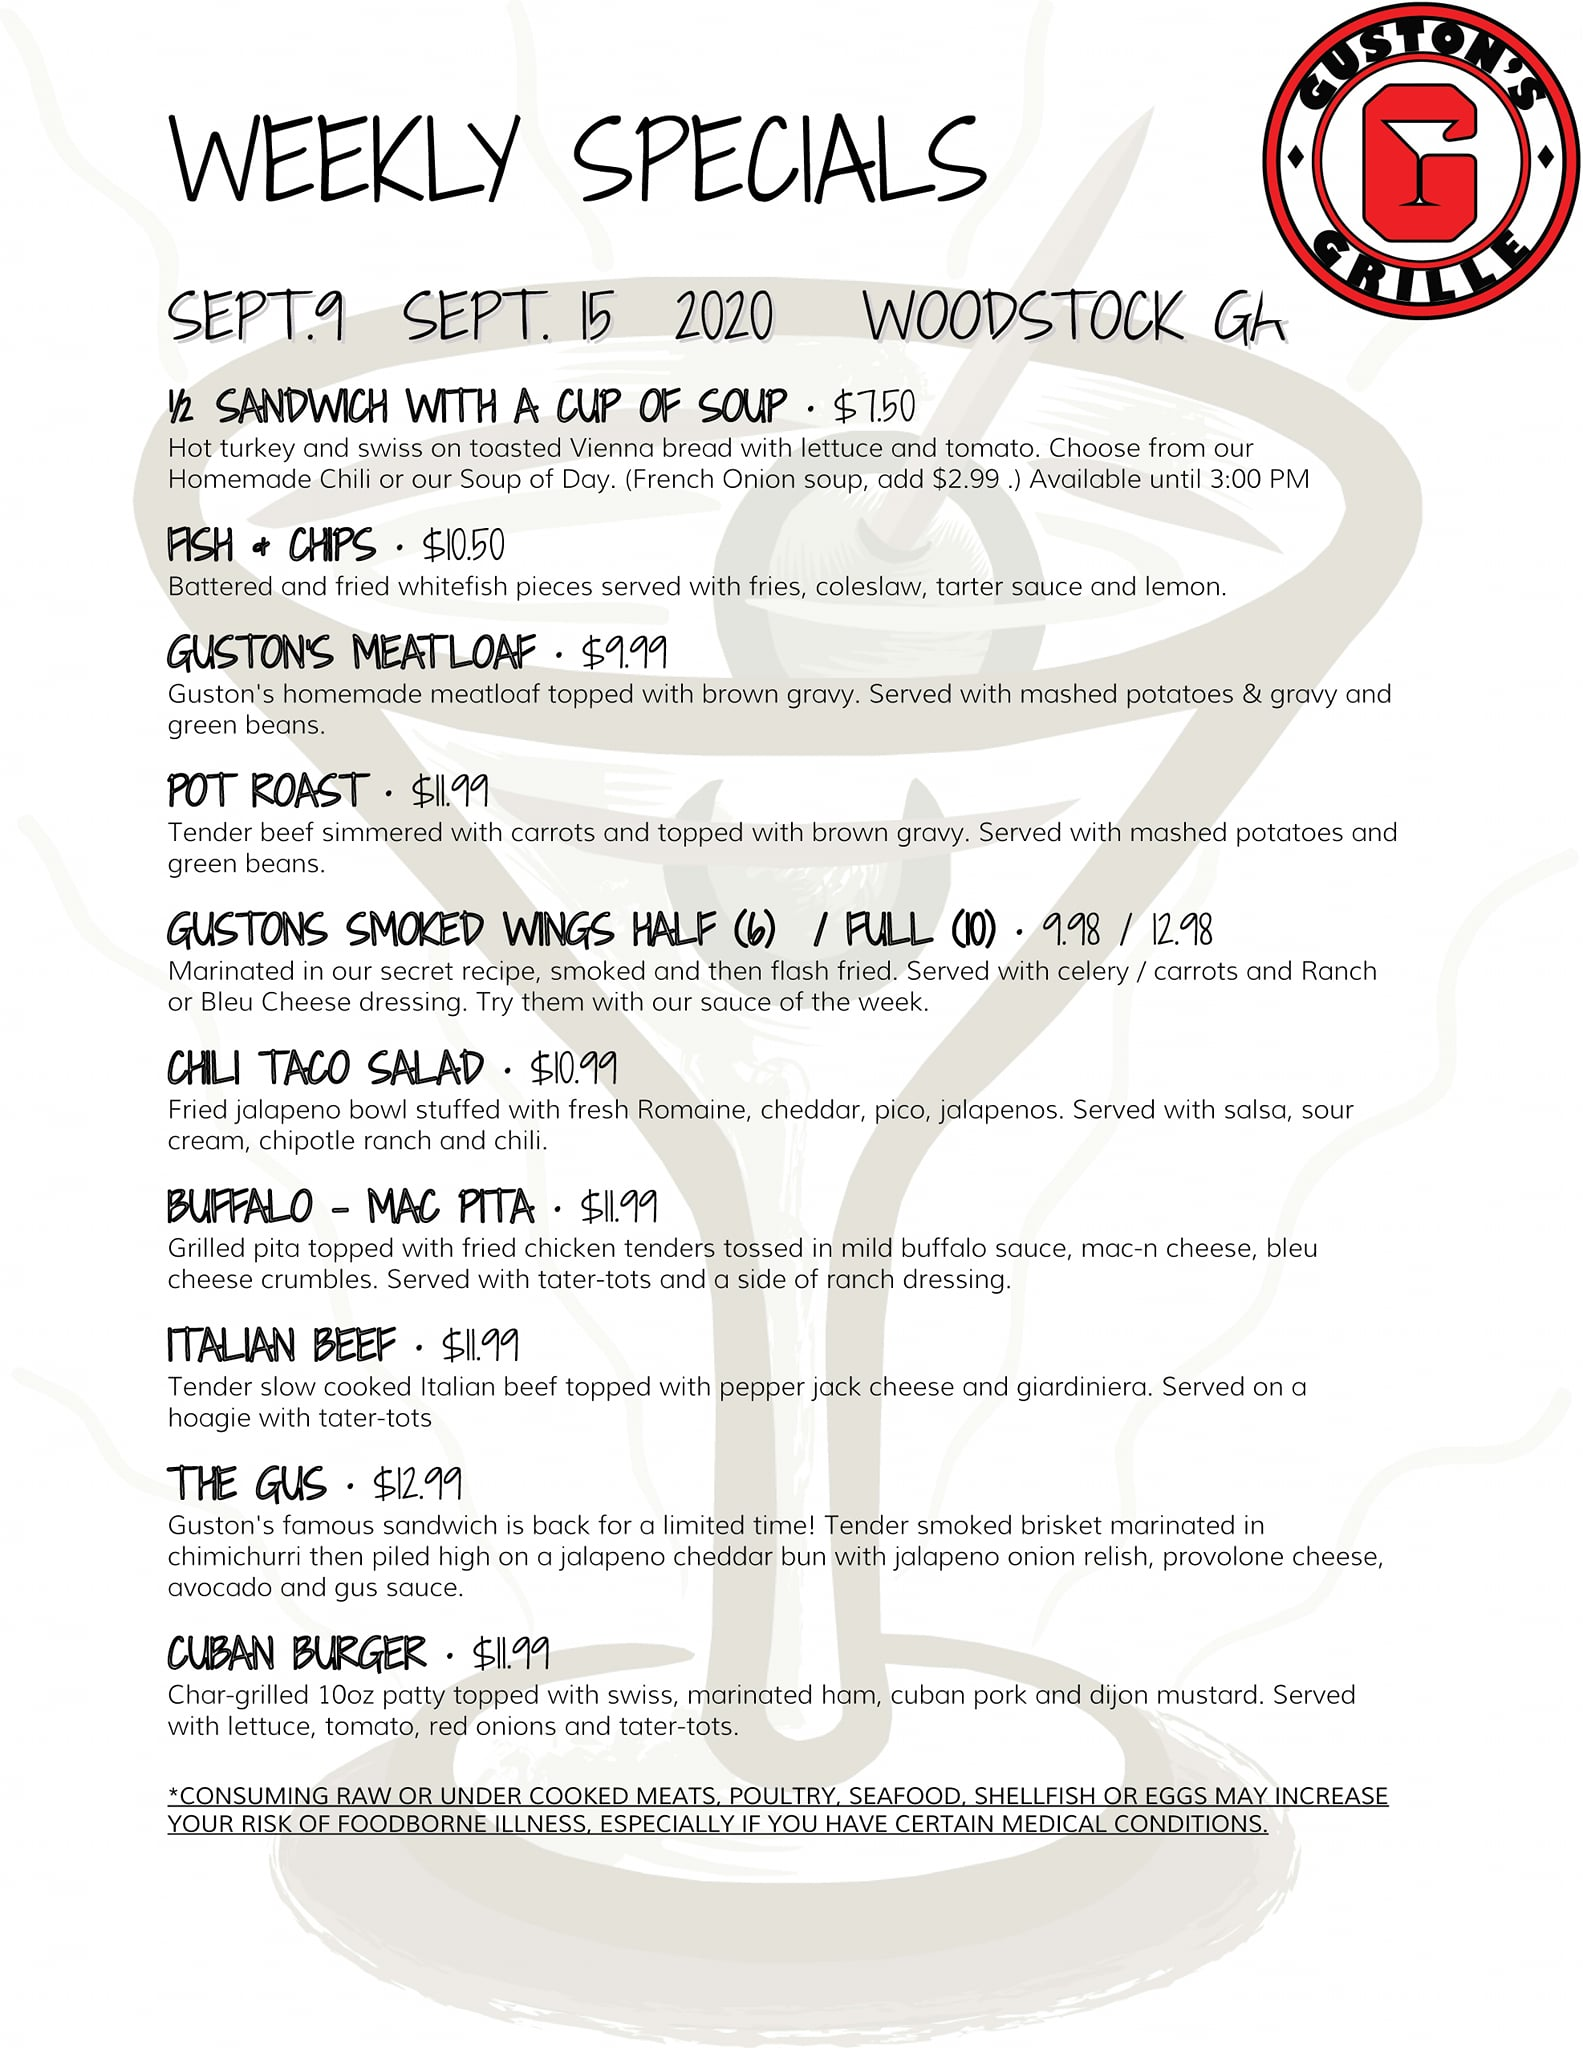 woodstock specials 99_Page_1